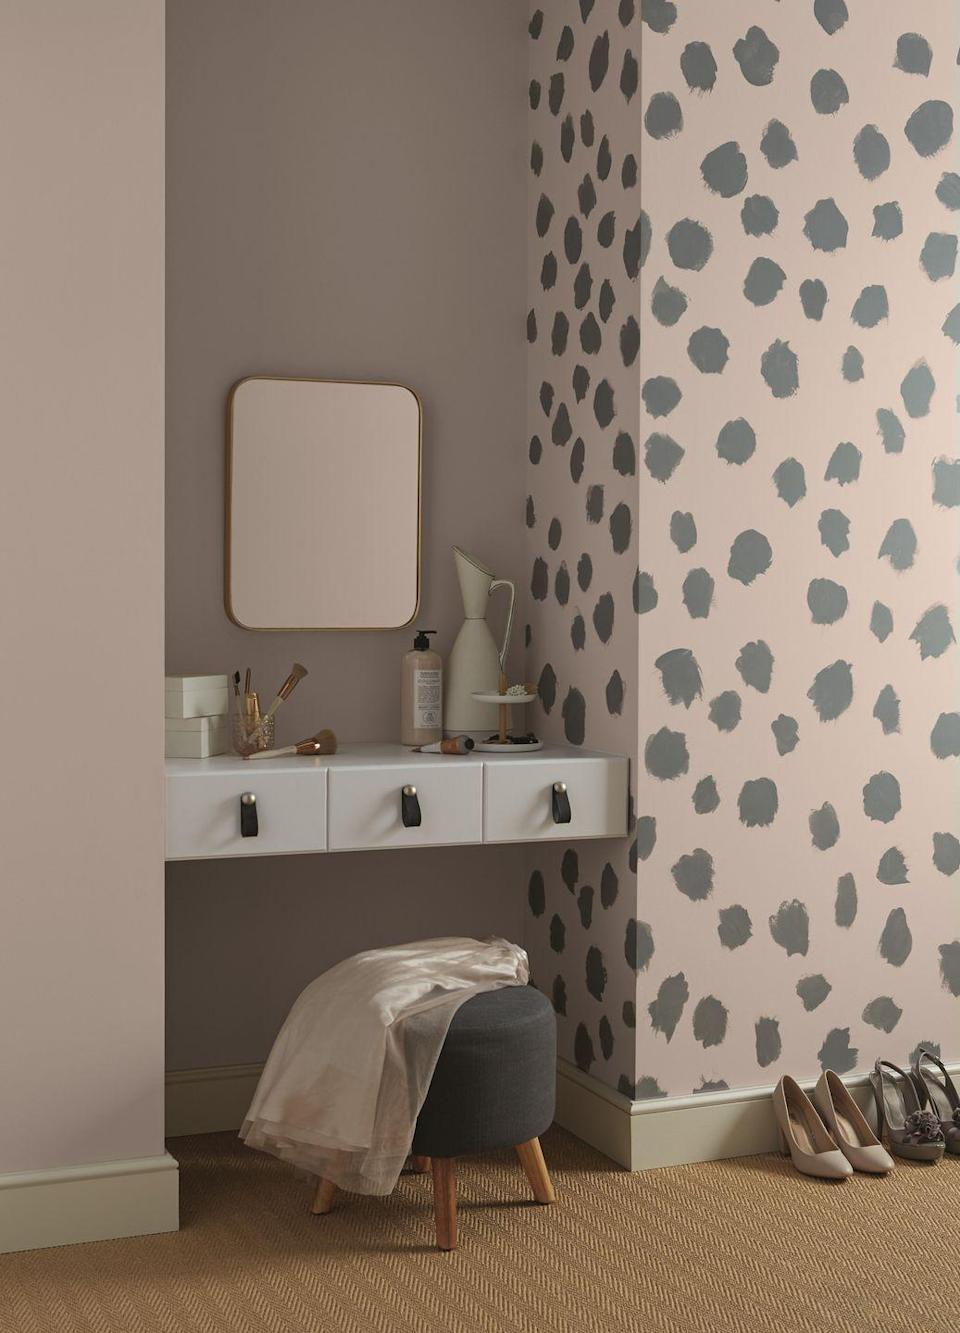 """<p>This is a great pink and grey bedroom idea, as it still looks stylish and doesn't overwhelm the space. In this predominantly pink room, splodges of dark grey have been painted onto the wall in a random pattern. It's easy to do and adds personality. Buy a grey stool to pull the scheme together.</p><p>Pictured: Hare (pink) and City Break (grey) matt emulsion, from <a href=""""https://www.crownpaints.co.uk/"""" rel=""""nofollow noopener"""" target=""""_blank"""" data-ylk=""""slk:Crown"""" class=""""link rapid-noclick-resp"""">Crown</a></p>"""